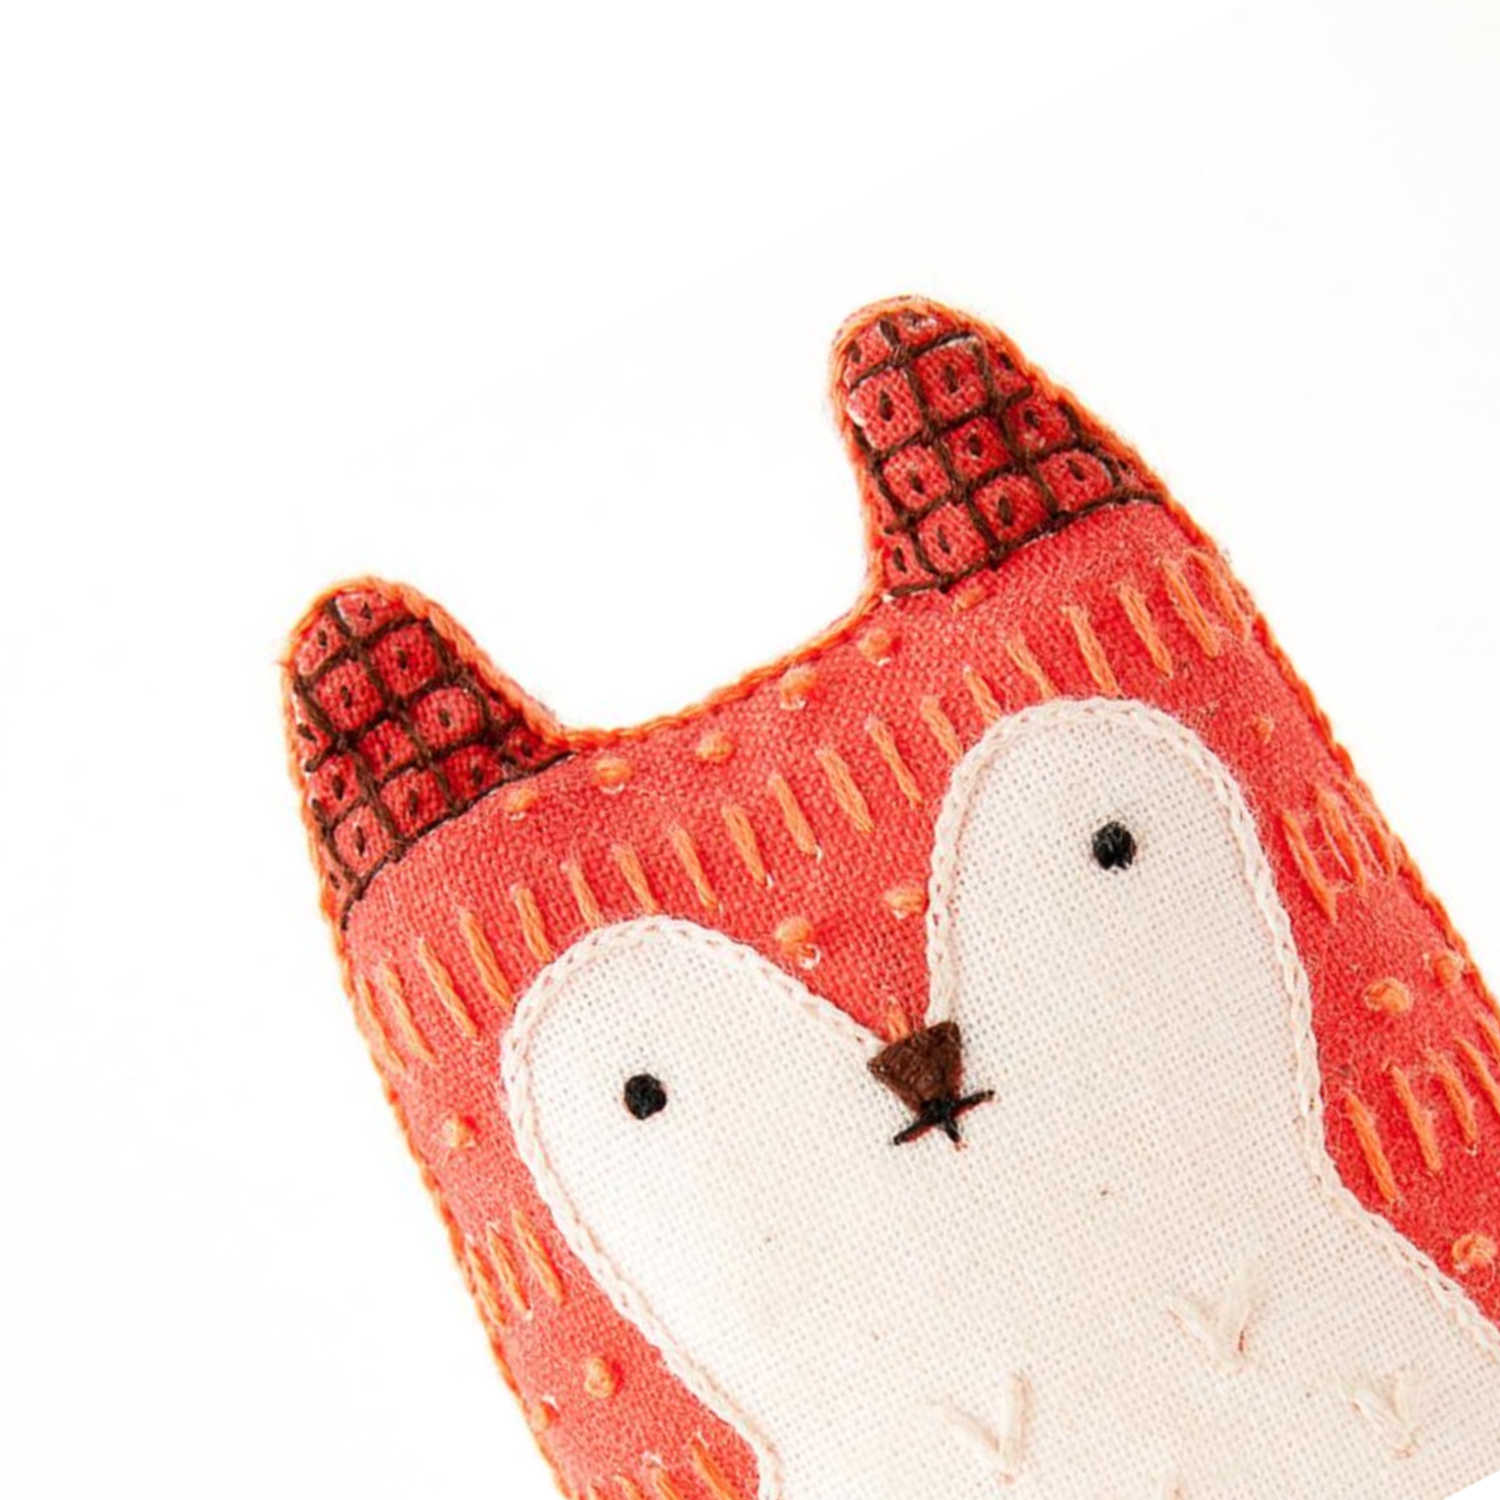 Fox Plushie Embroidery Kit by Kiriki Press Embroidery Kit - Snuggly Monkey